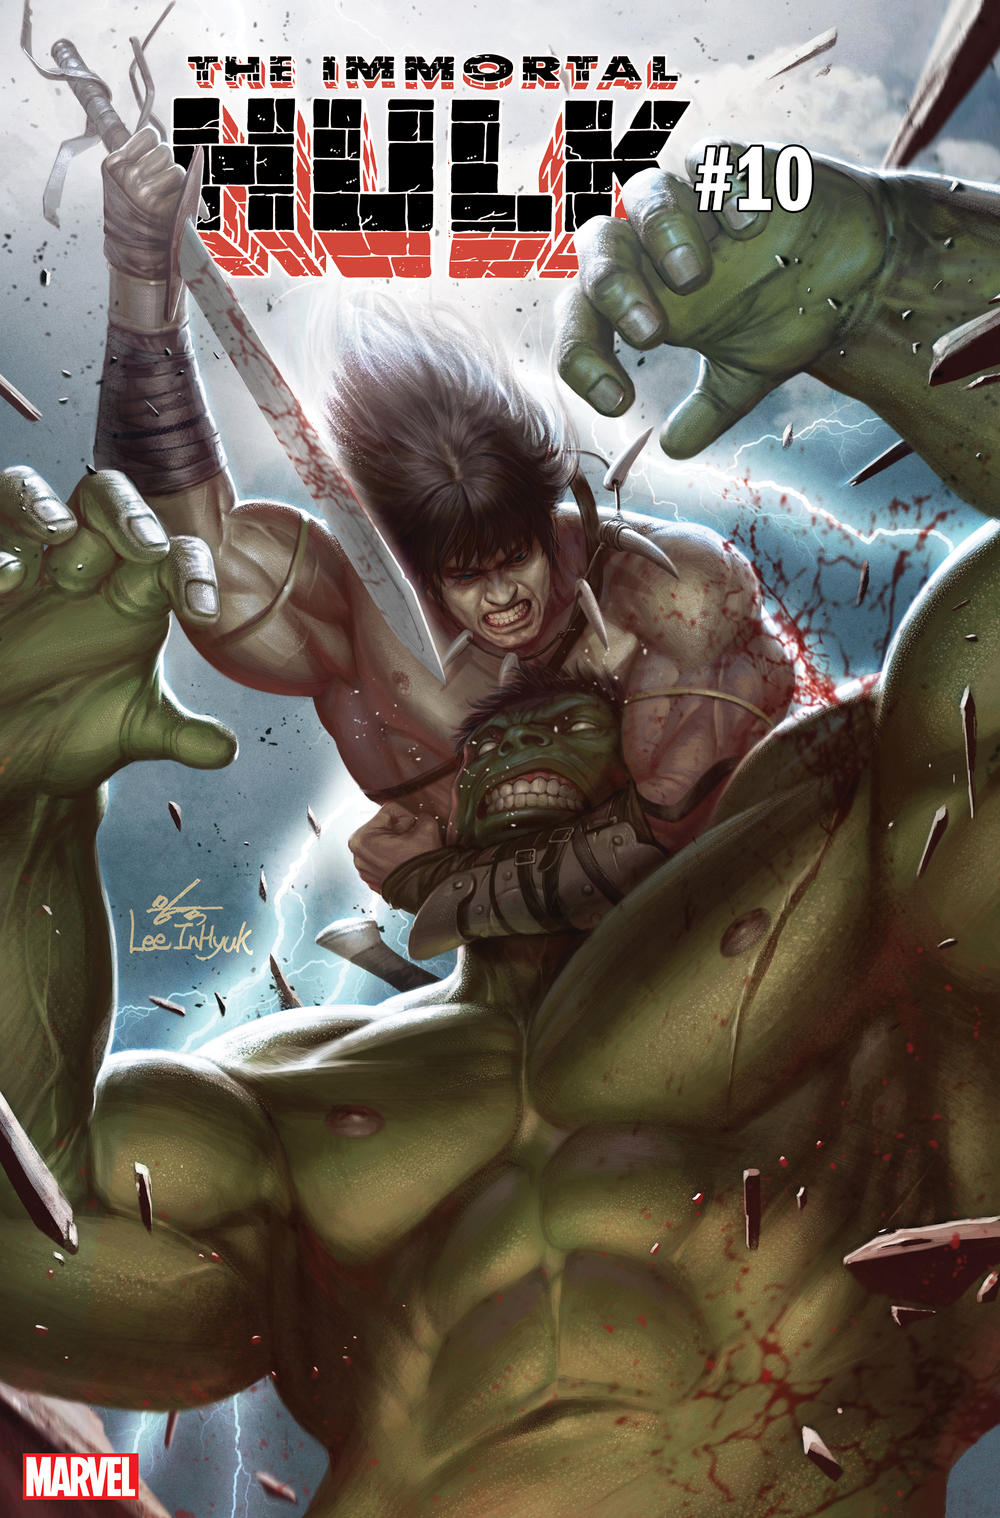 IMMORTAL HULK #10 Conan variant cover by Inhyuk Lee